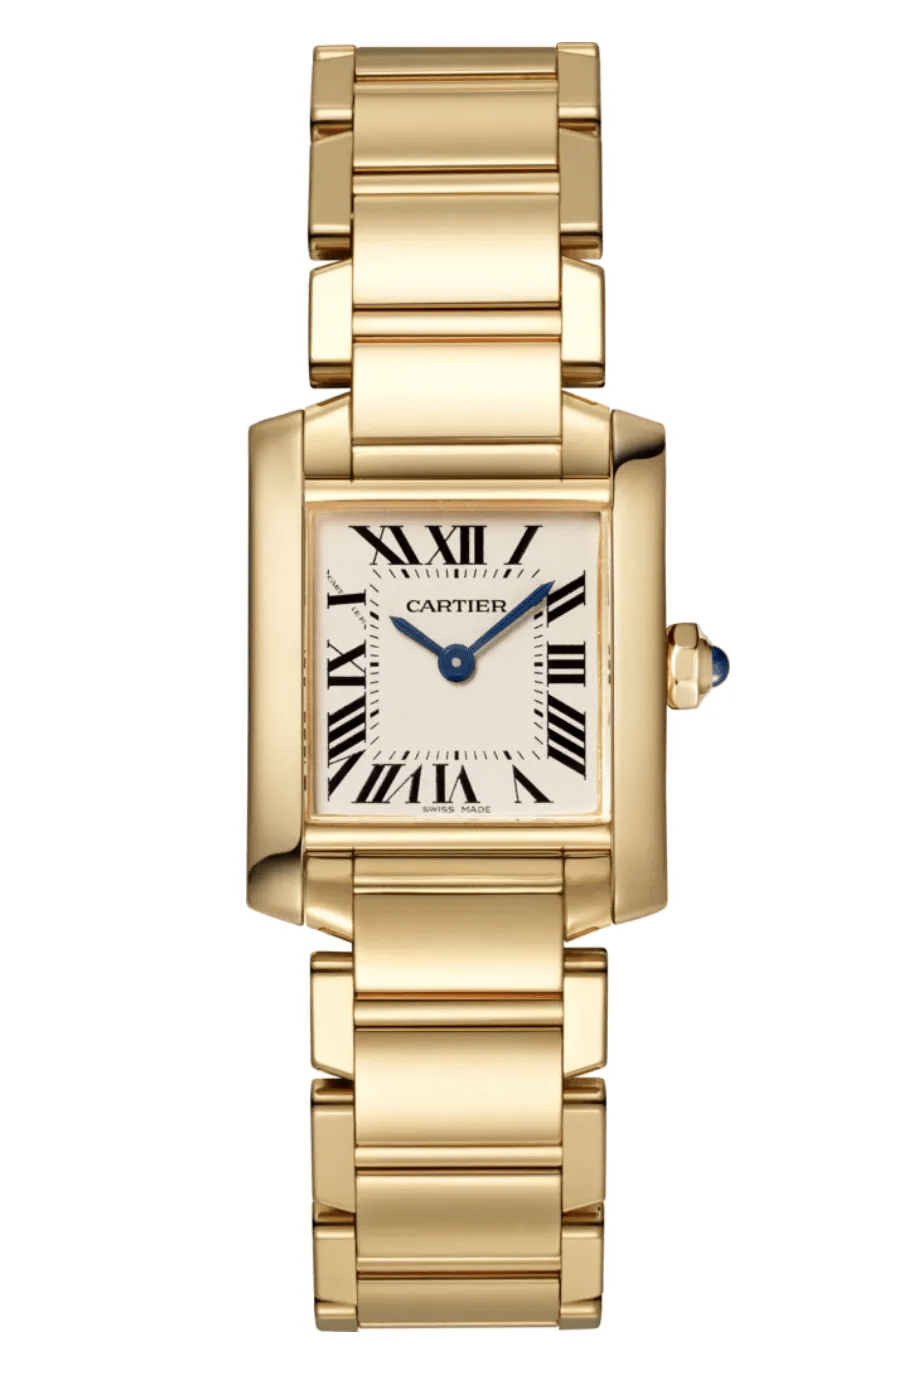 A gold watch with a square face